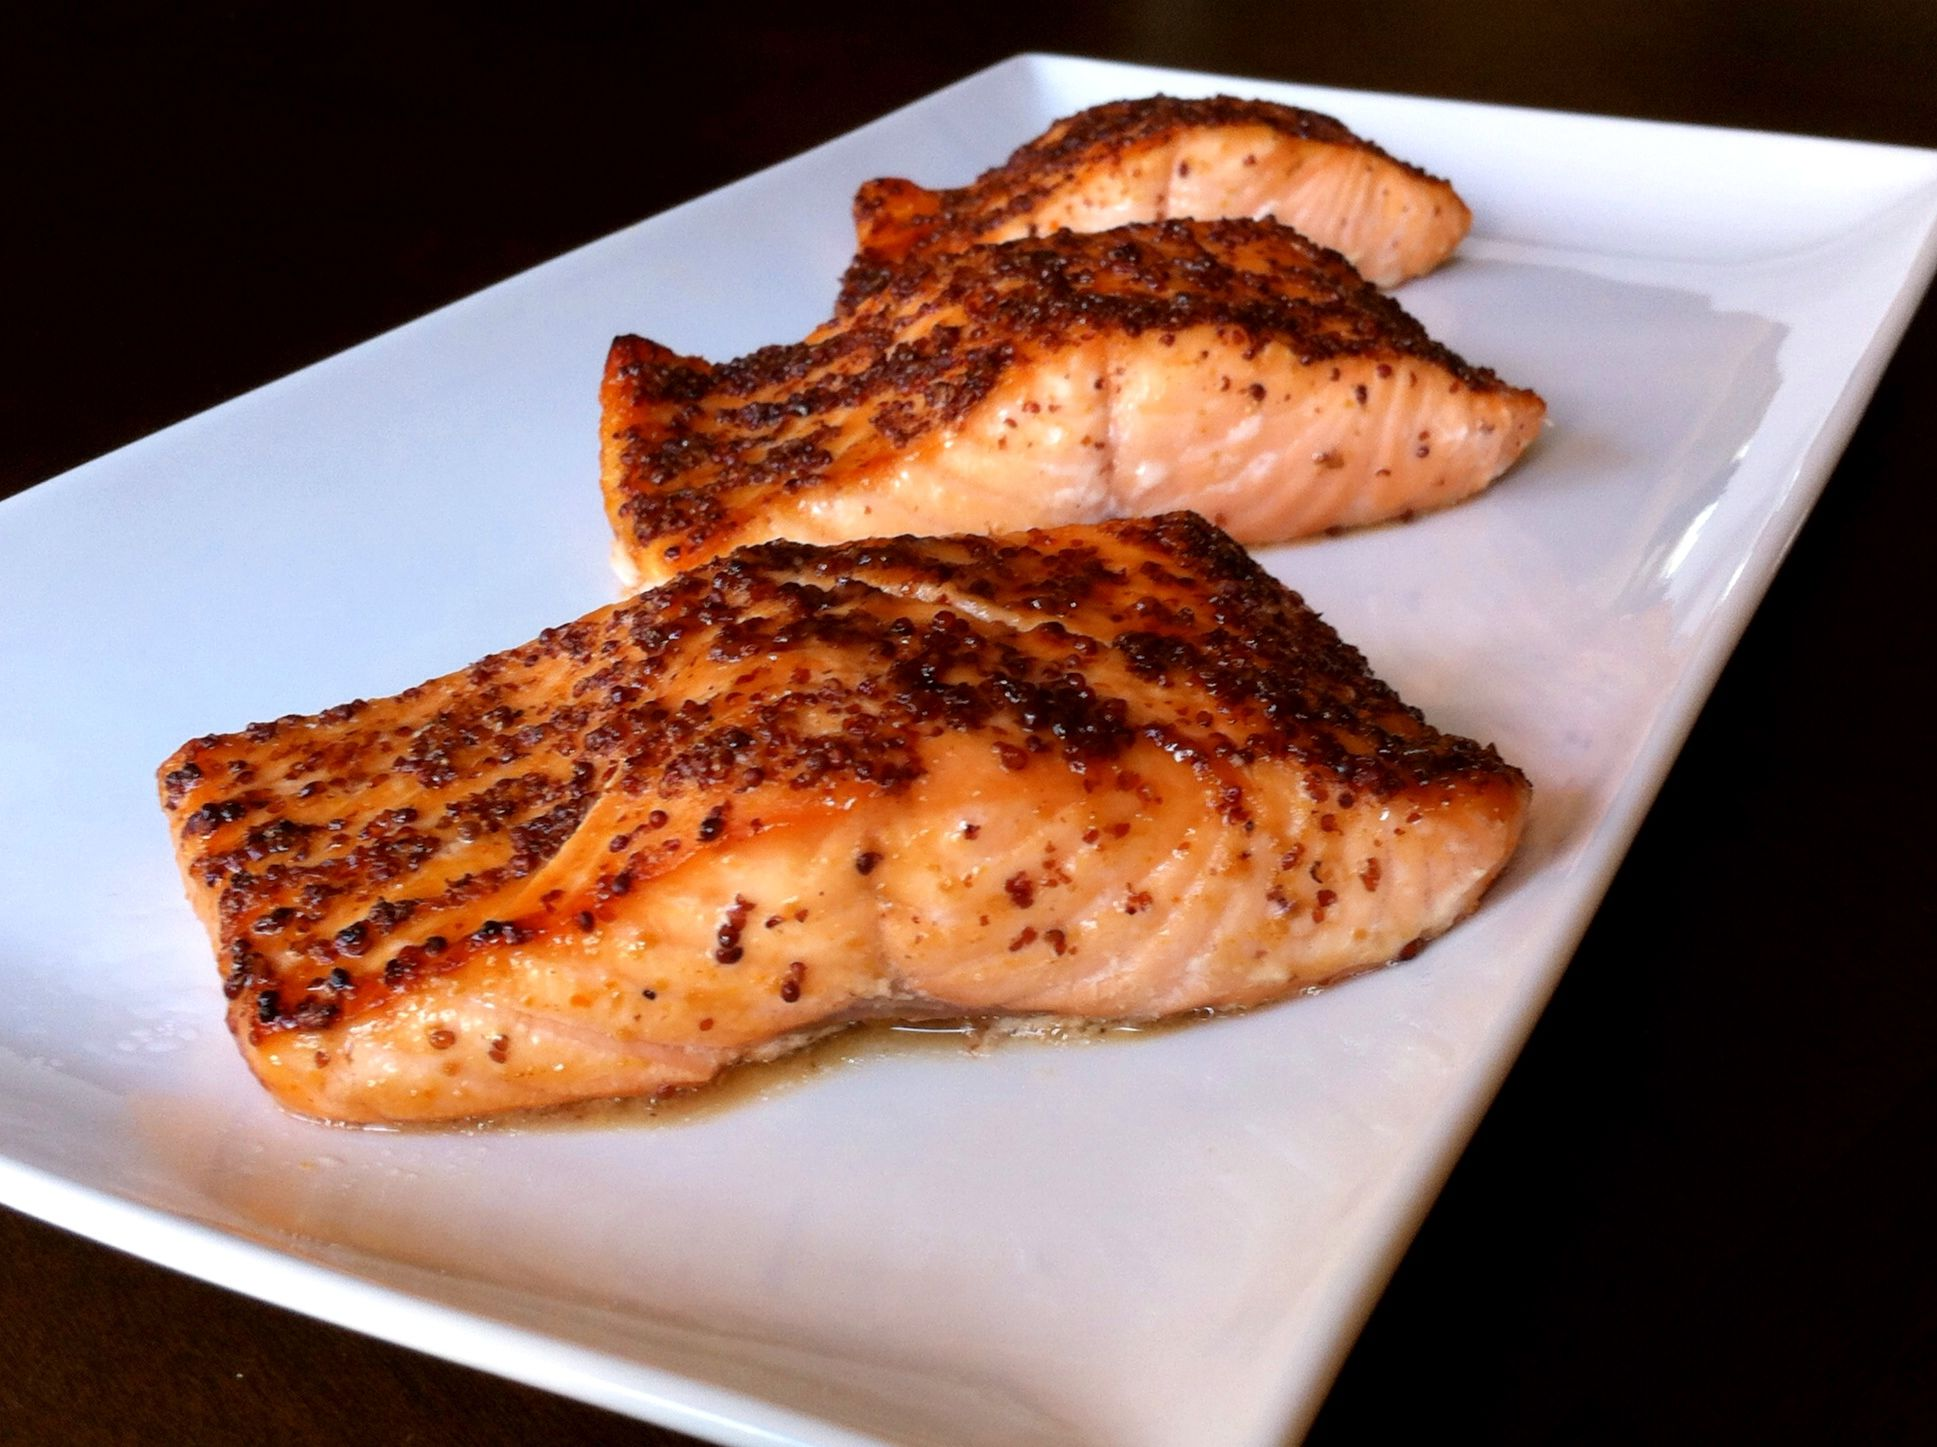 Broiled Salmon with Maple-Mustard Glaze